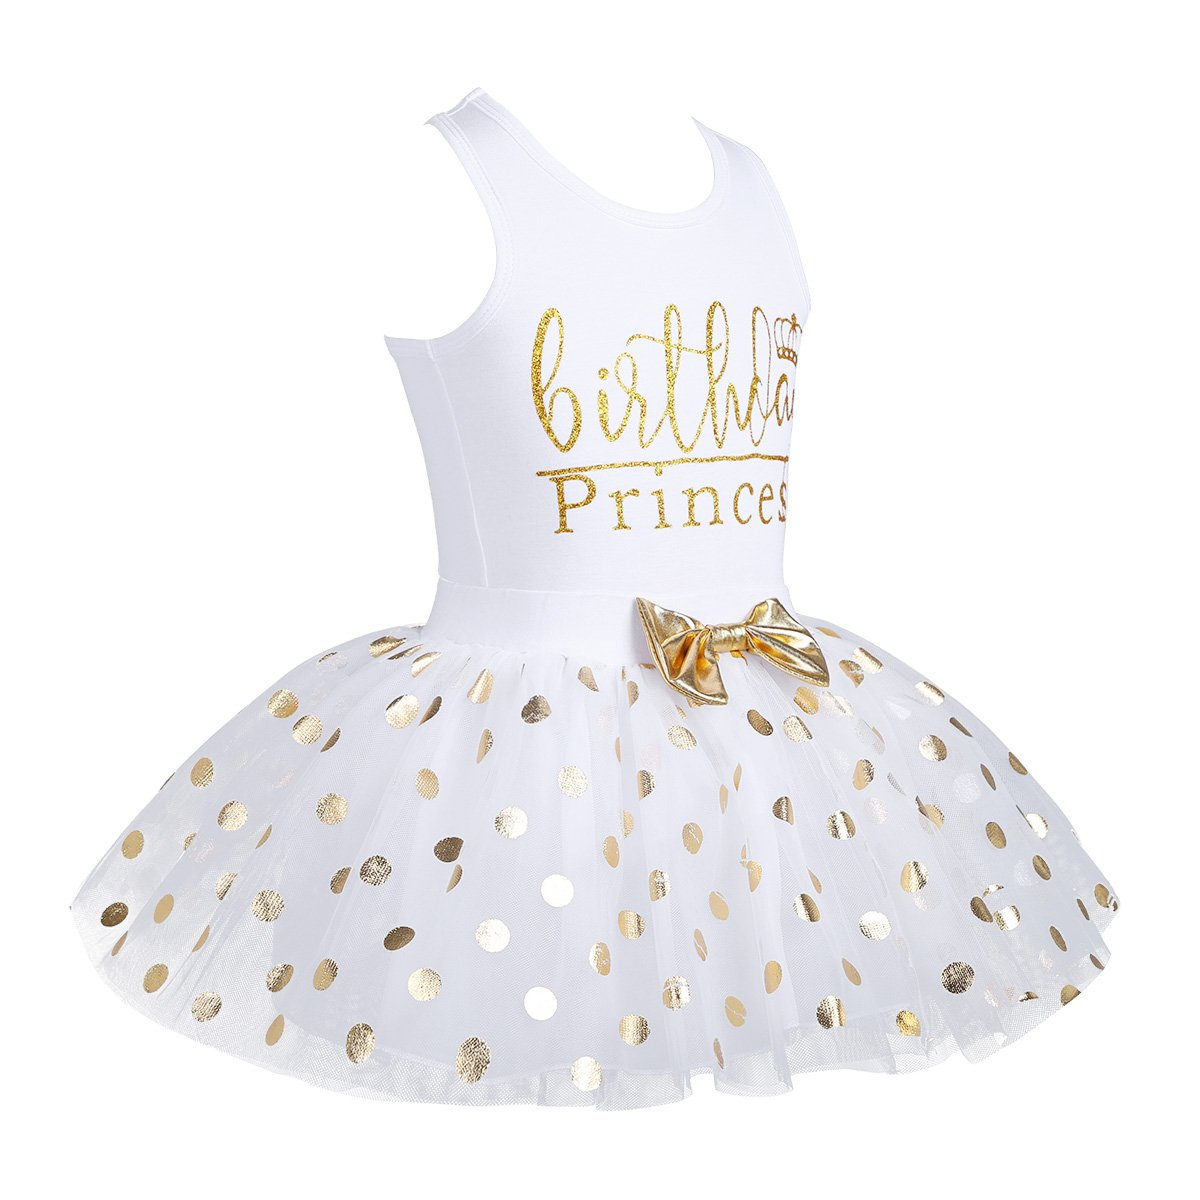 dPois Little Princess Girls' First Birthday Outfits Glittery Monogram Tank Top with Polka Dot Skirts 2 Pieces Set White 4-5 by dPois (Image #3)